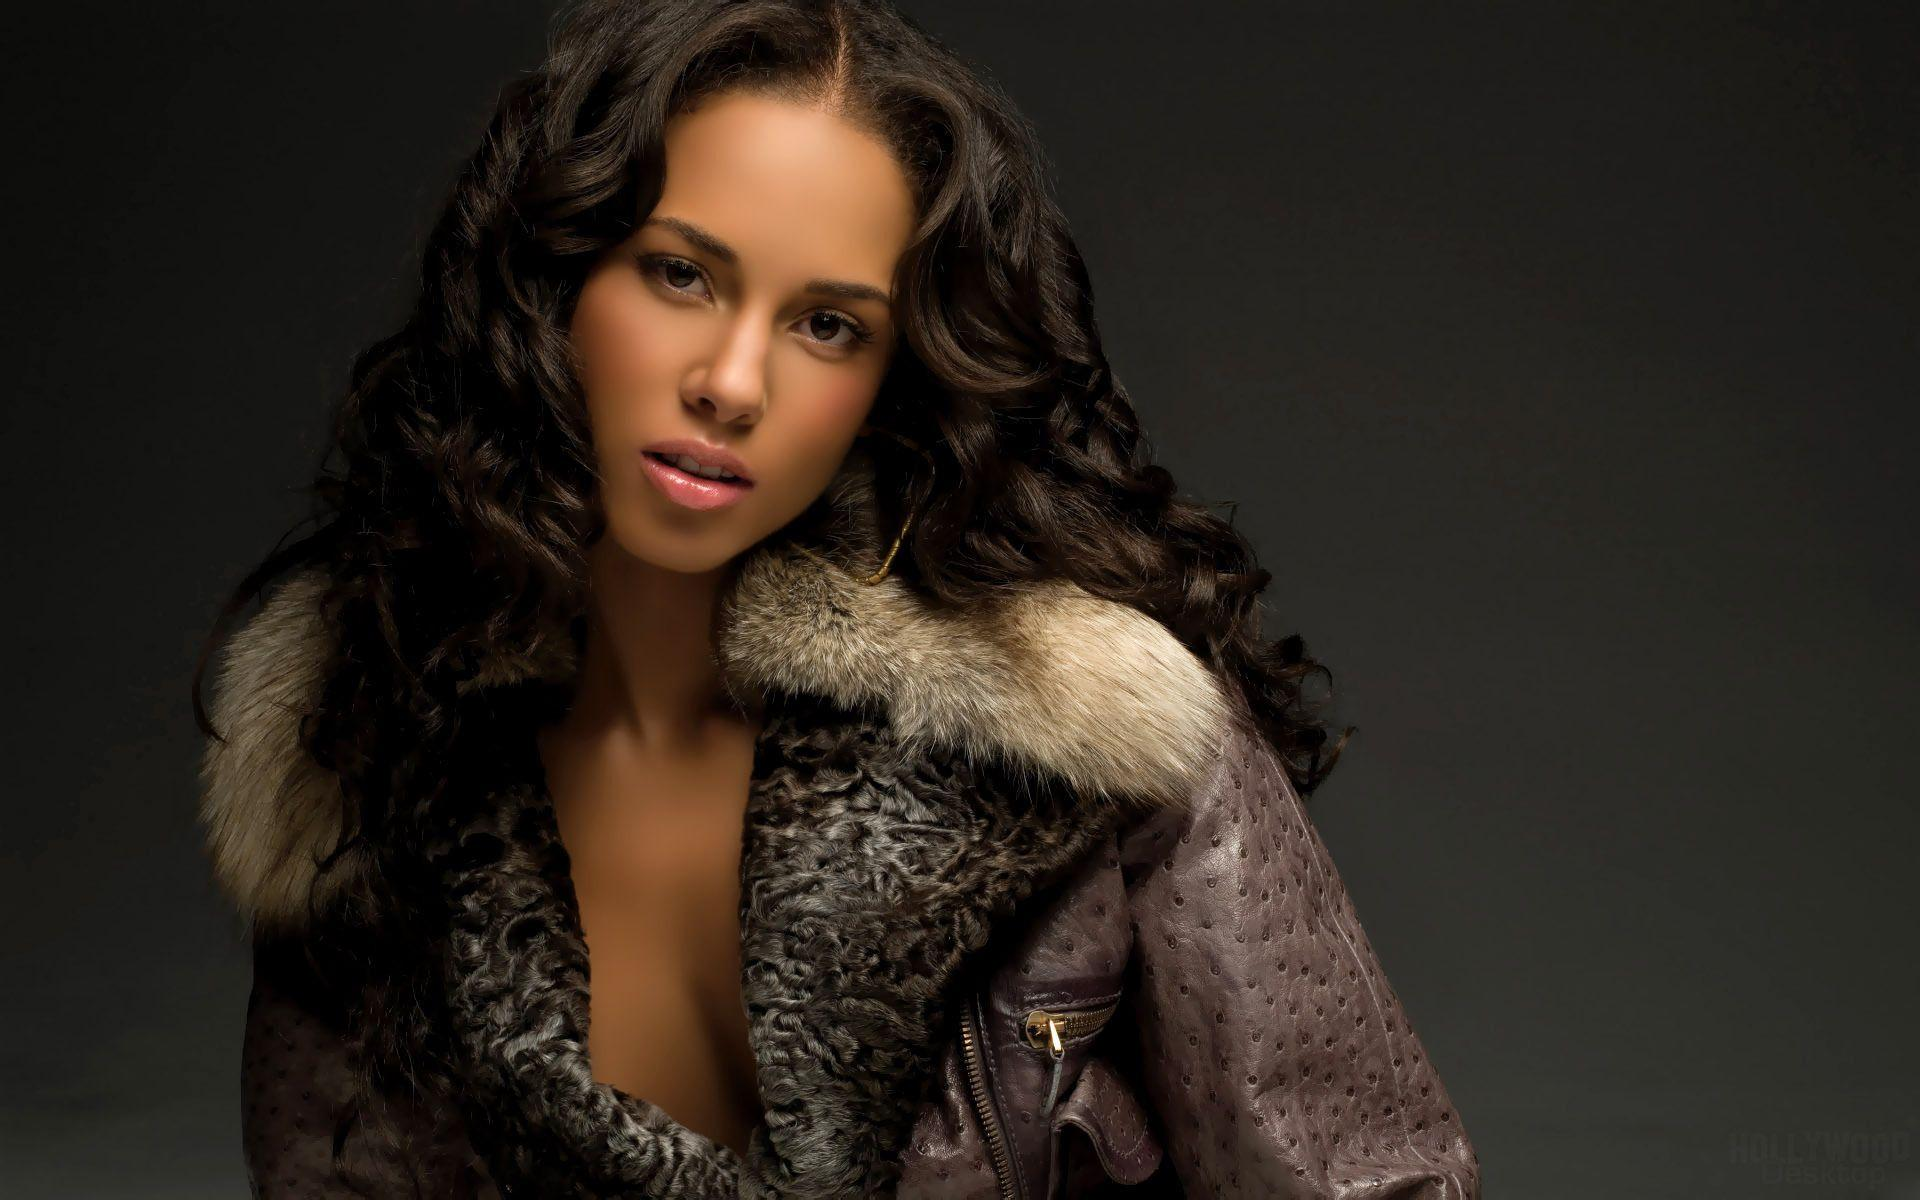 Alicia Keys Photoshoot - Viewing Gallery